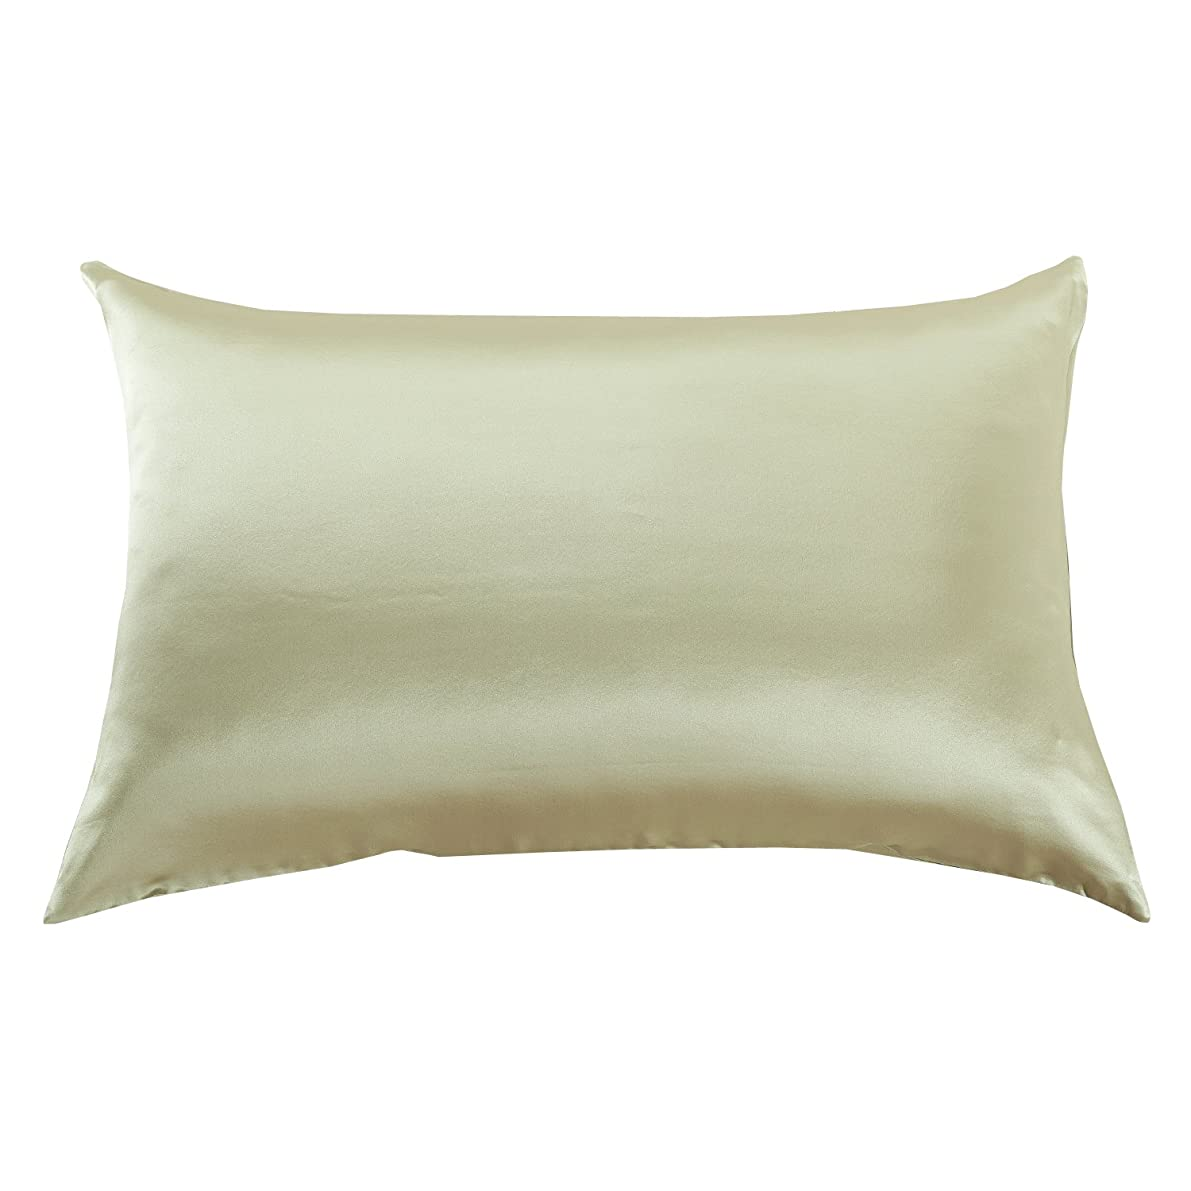 Orose 22MM Luxury Mulberry Silk Pillowcase, Good for Hair and Facial Beauty, Prevent from Wrinkle and Allergy, 100% Silk on Both Sides, Gift Wrap,1Pc (King, Light Green)